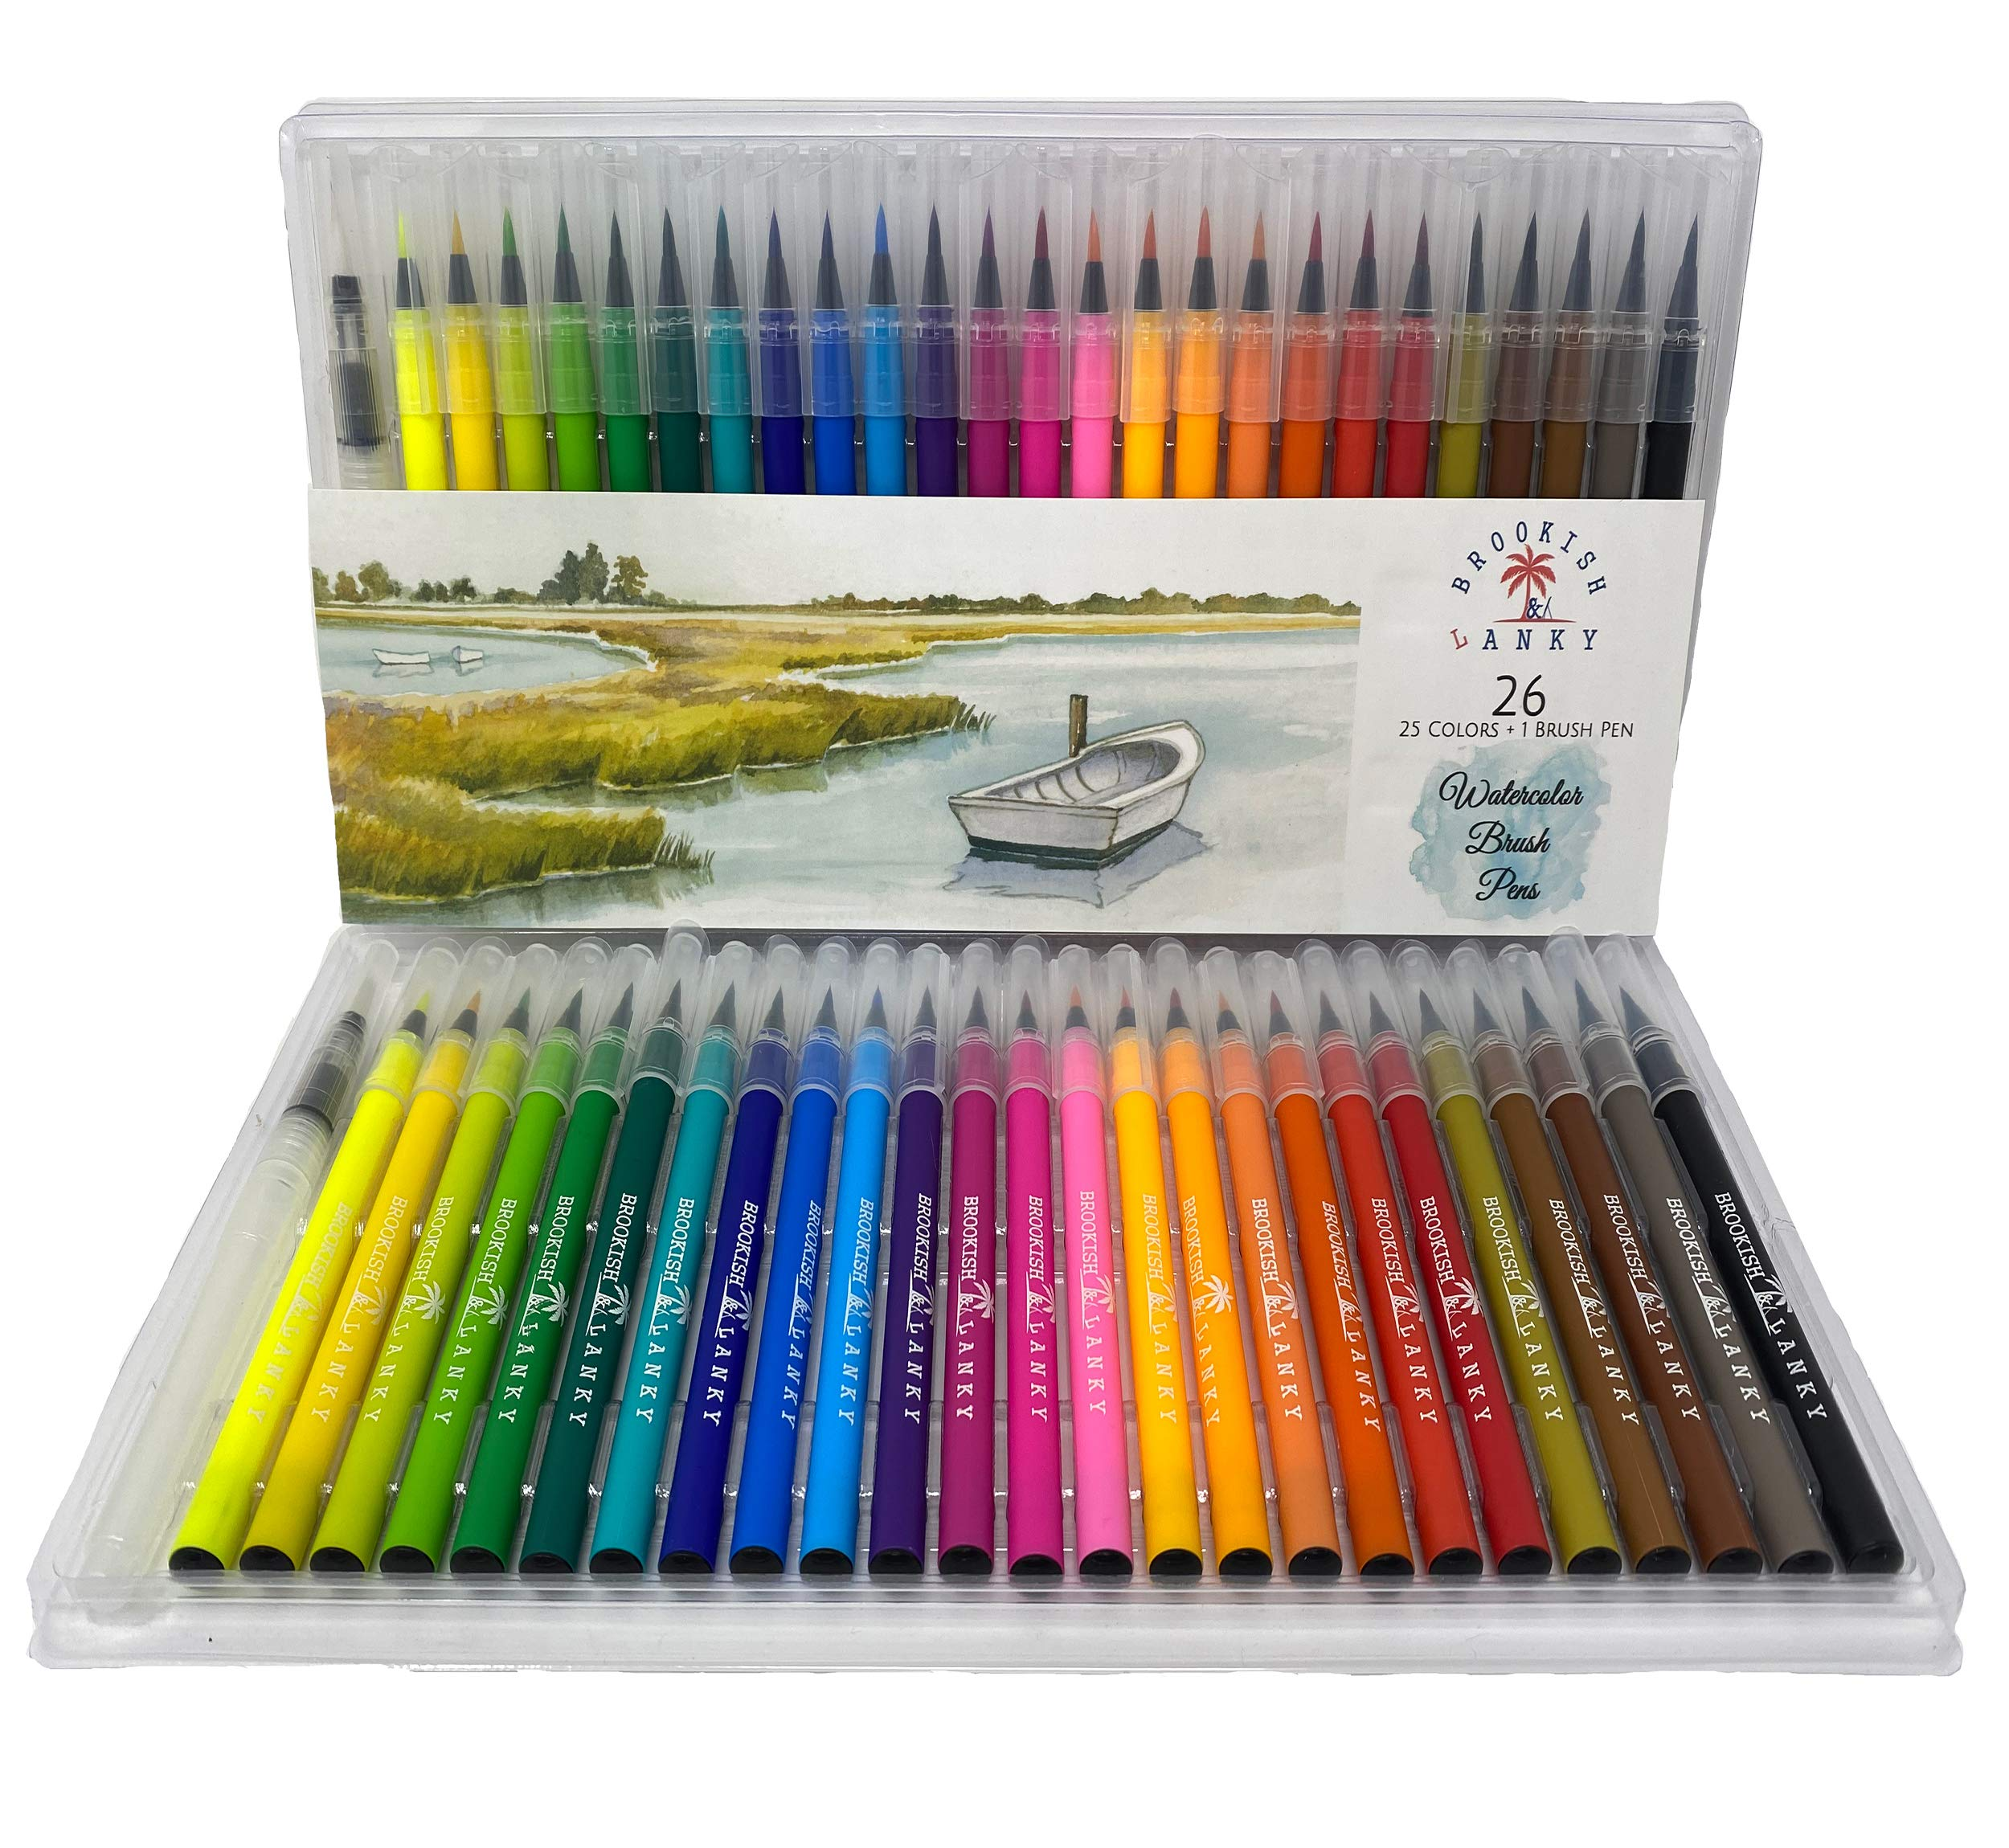 Water Coloring Brush Pens Set, 25 Vibrant Colors, Painting with Flexible Tip Paint Markers I Calligraphy, Drawing, Sketching for Artists Beginner Painters I Kids School Art Supplies